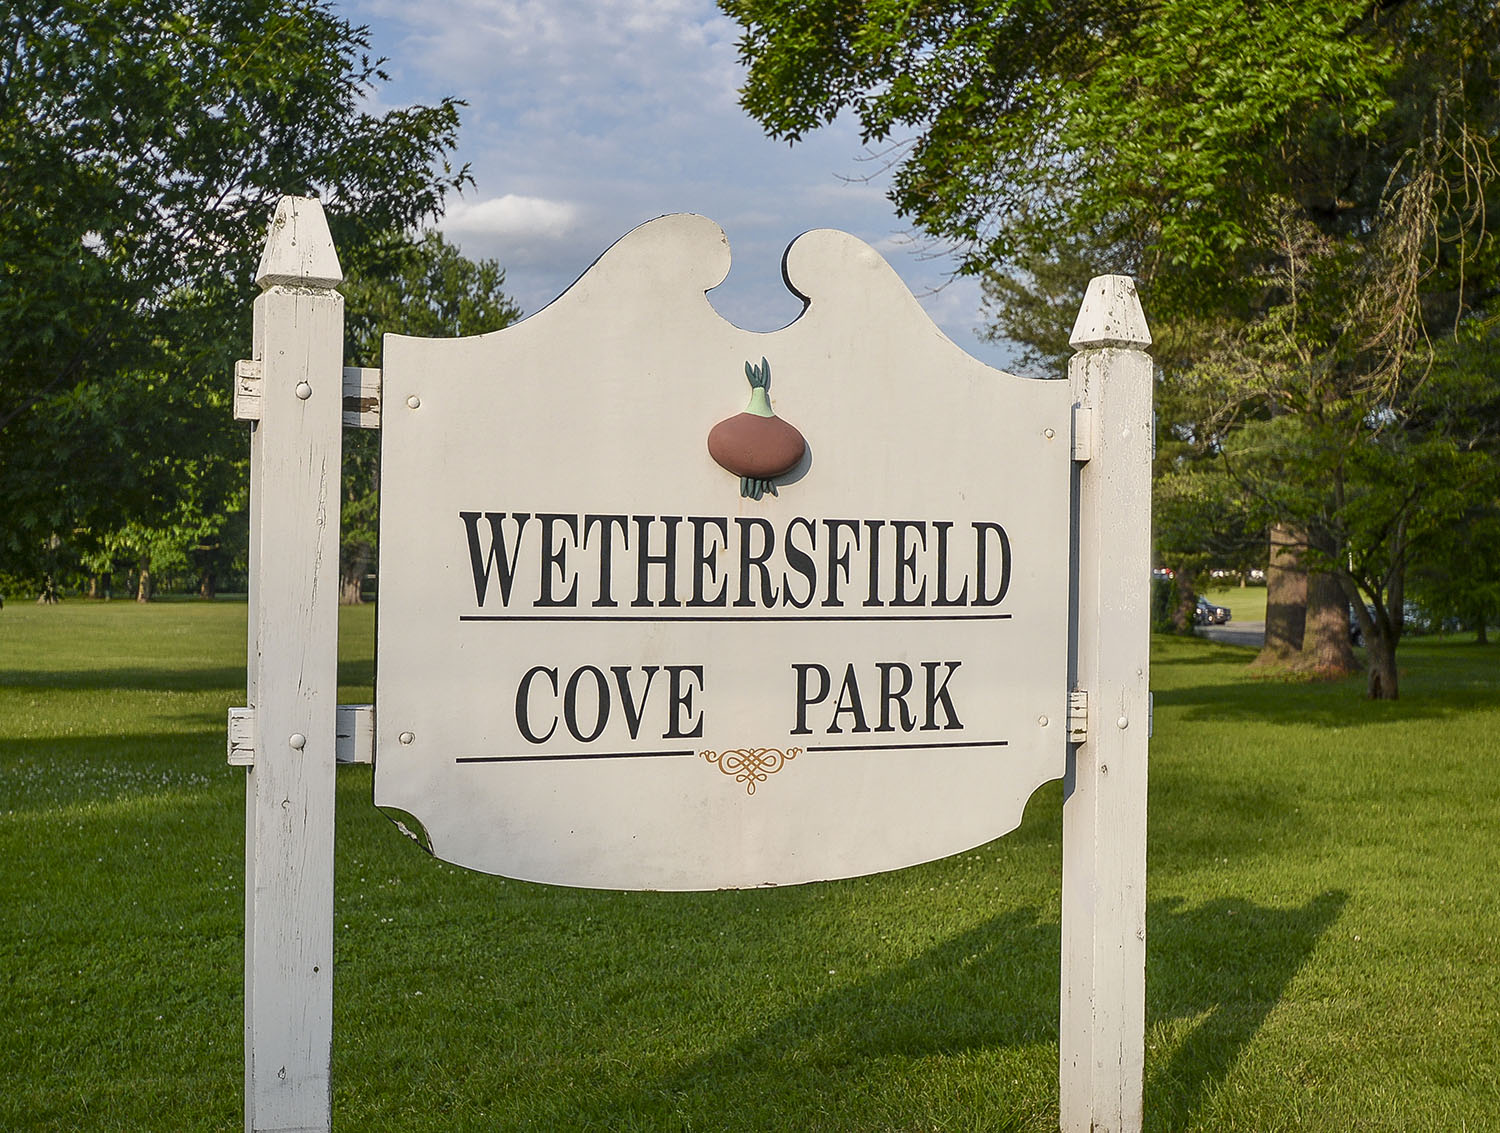 Nearby: Wethersfield Cove Park signage